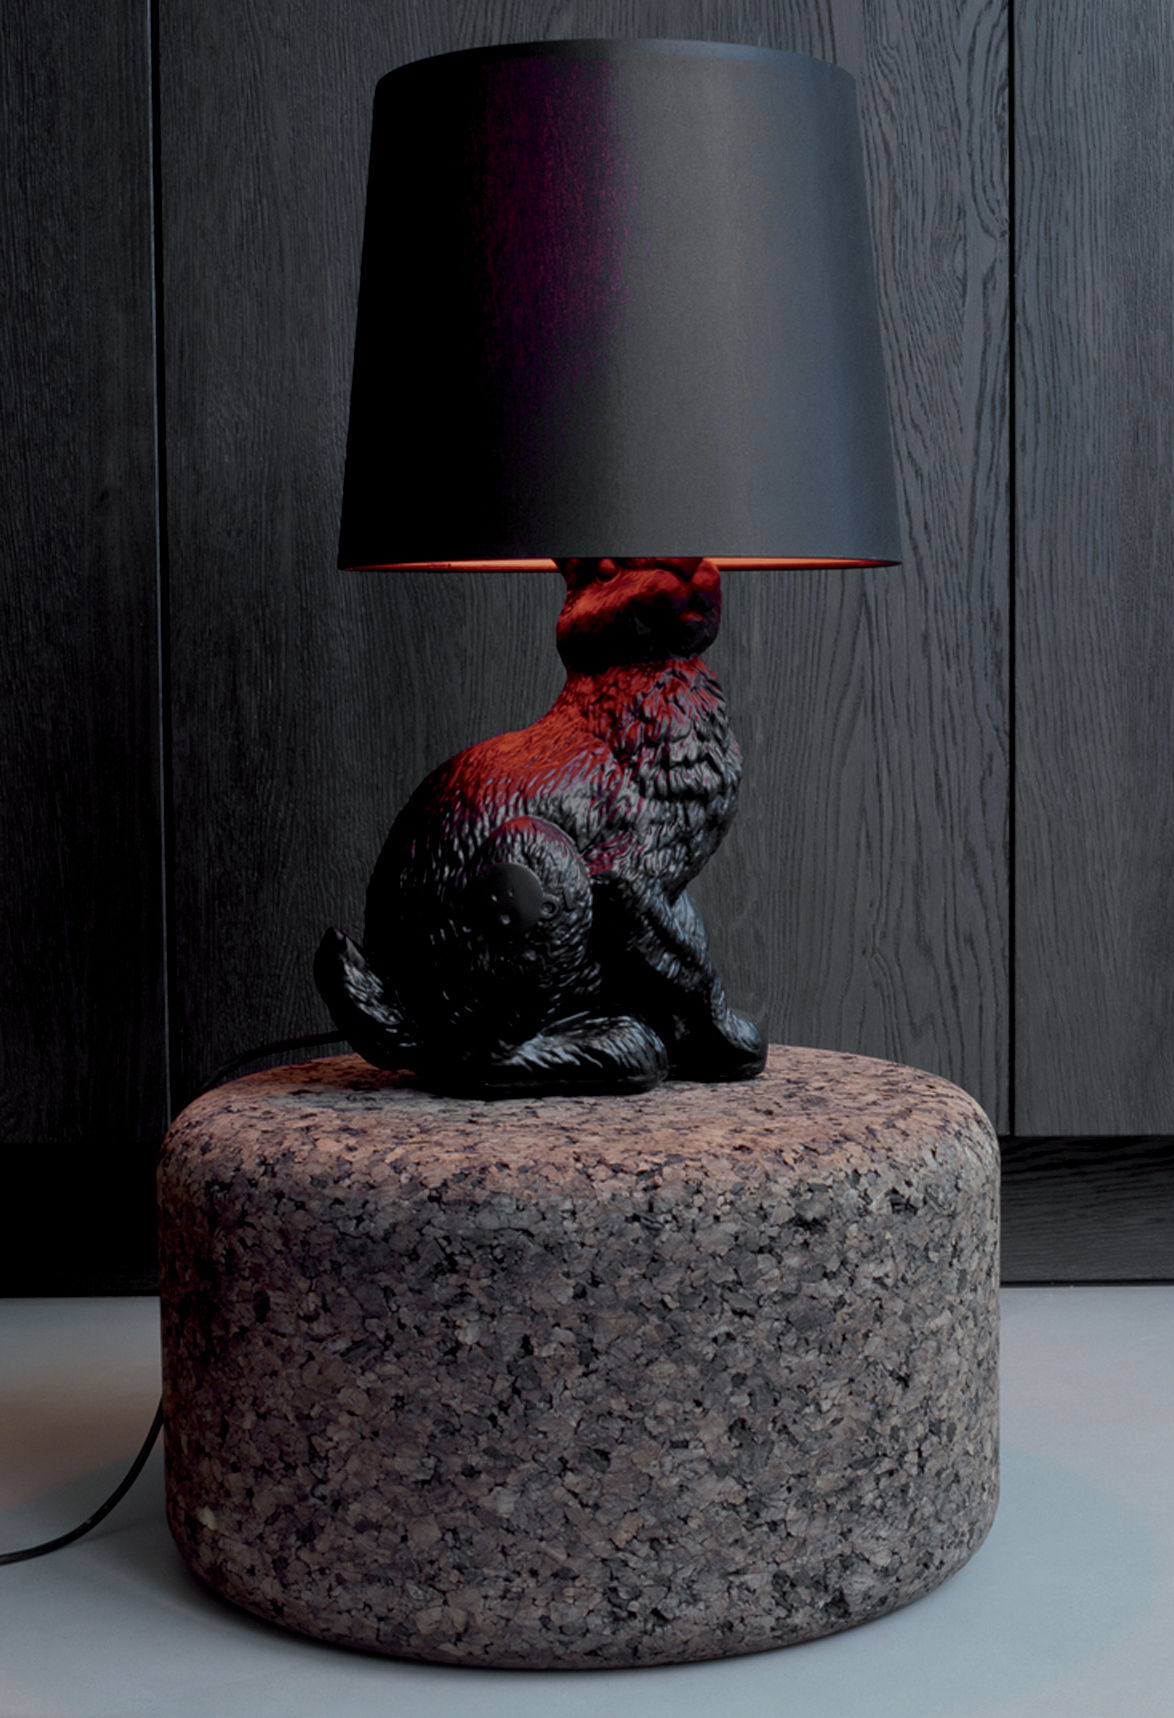 Rabbit lamp table lamp black by moooi for Design table lamp giffy 17 7